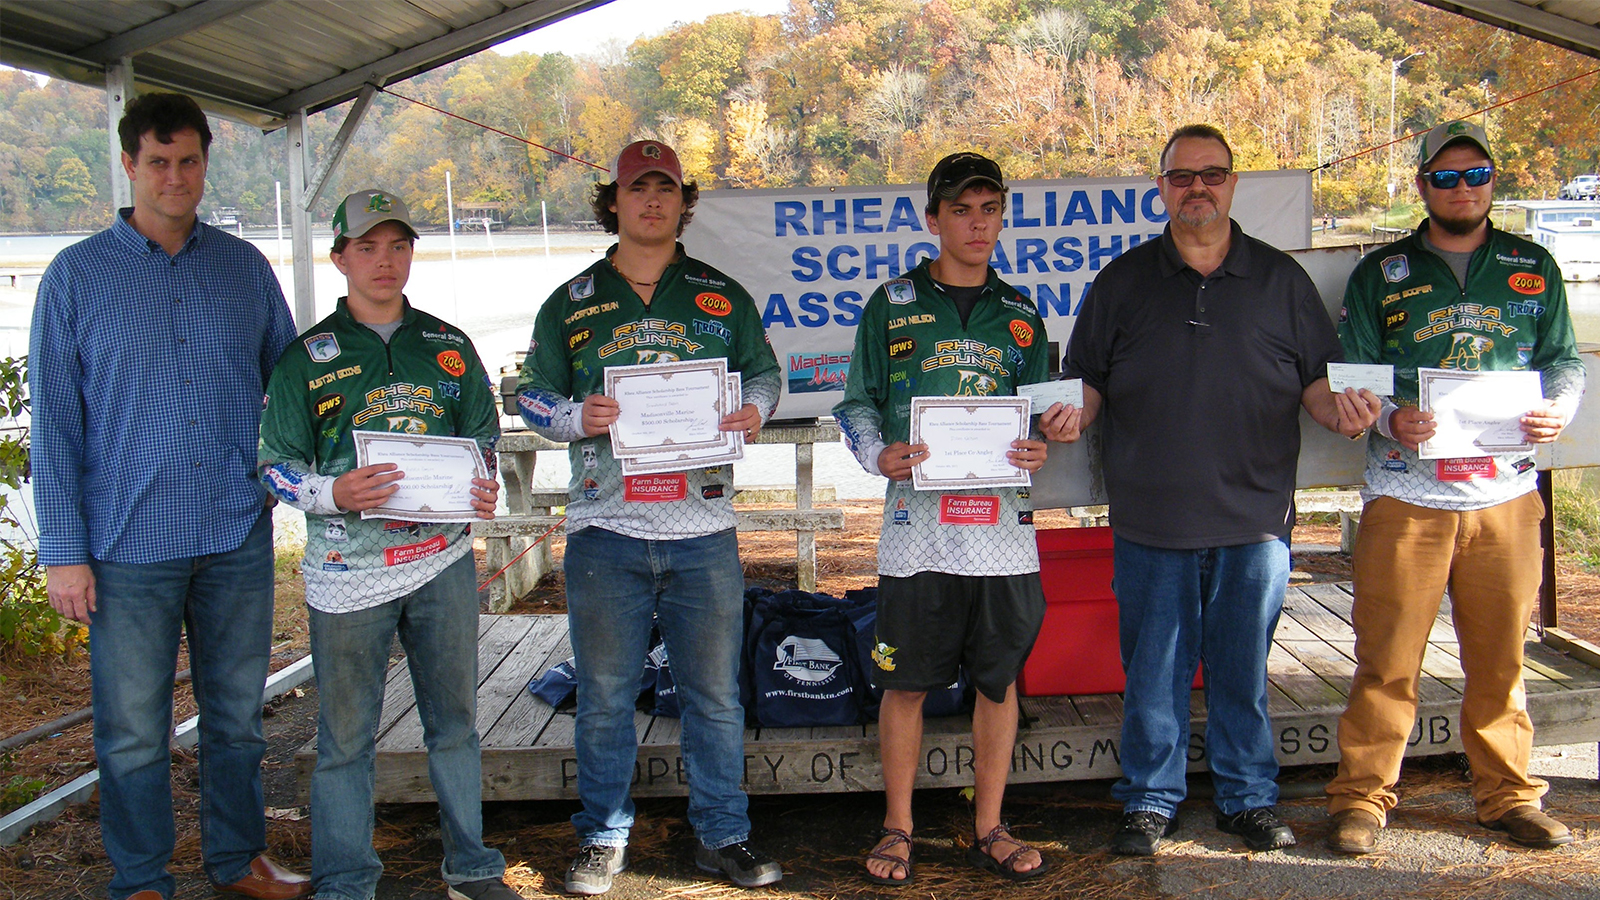 Rhea alliance awards scholarships to anglers for College fishing scholarships